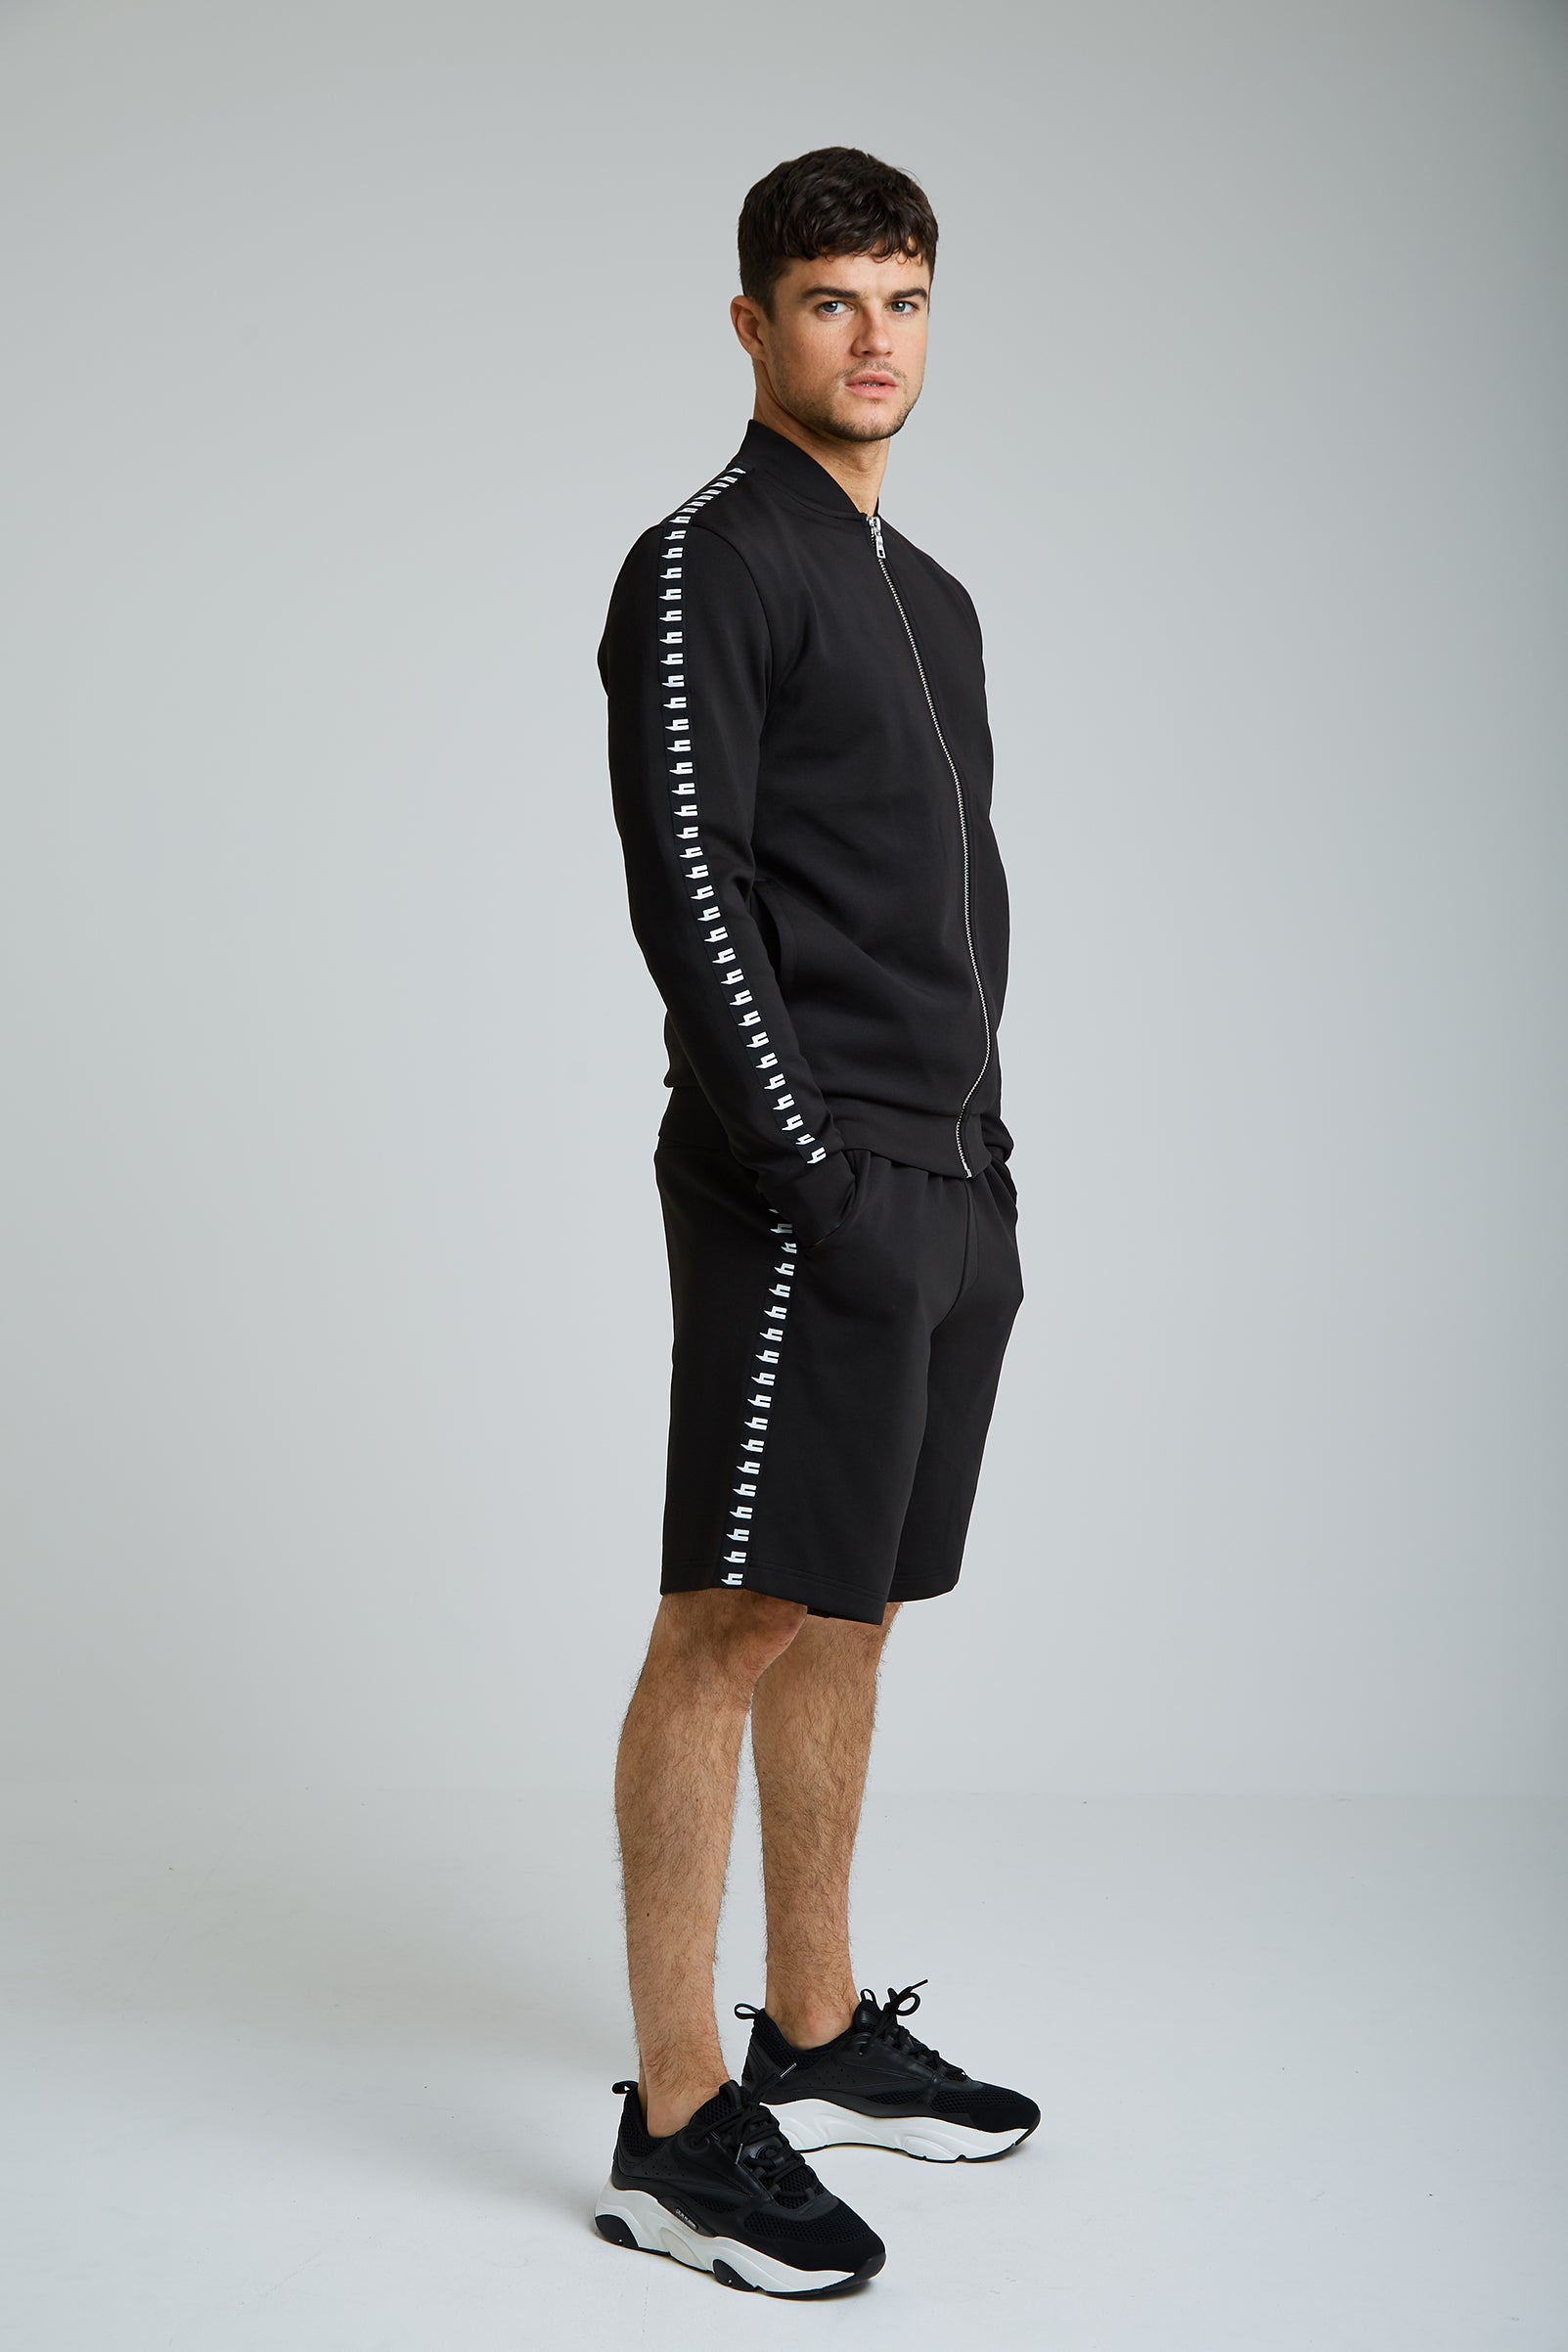 YELIR WORLD SIDE STRIPE SHORTS BLACK/WHITE